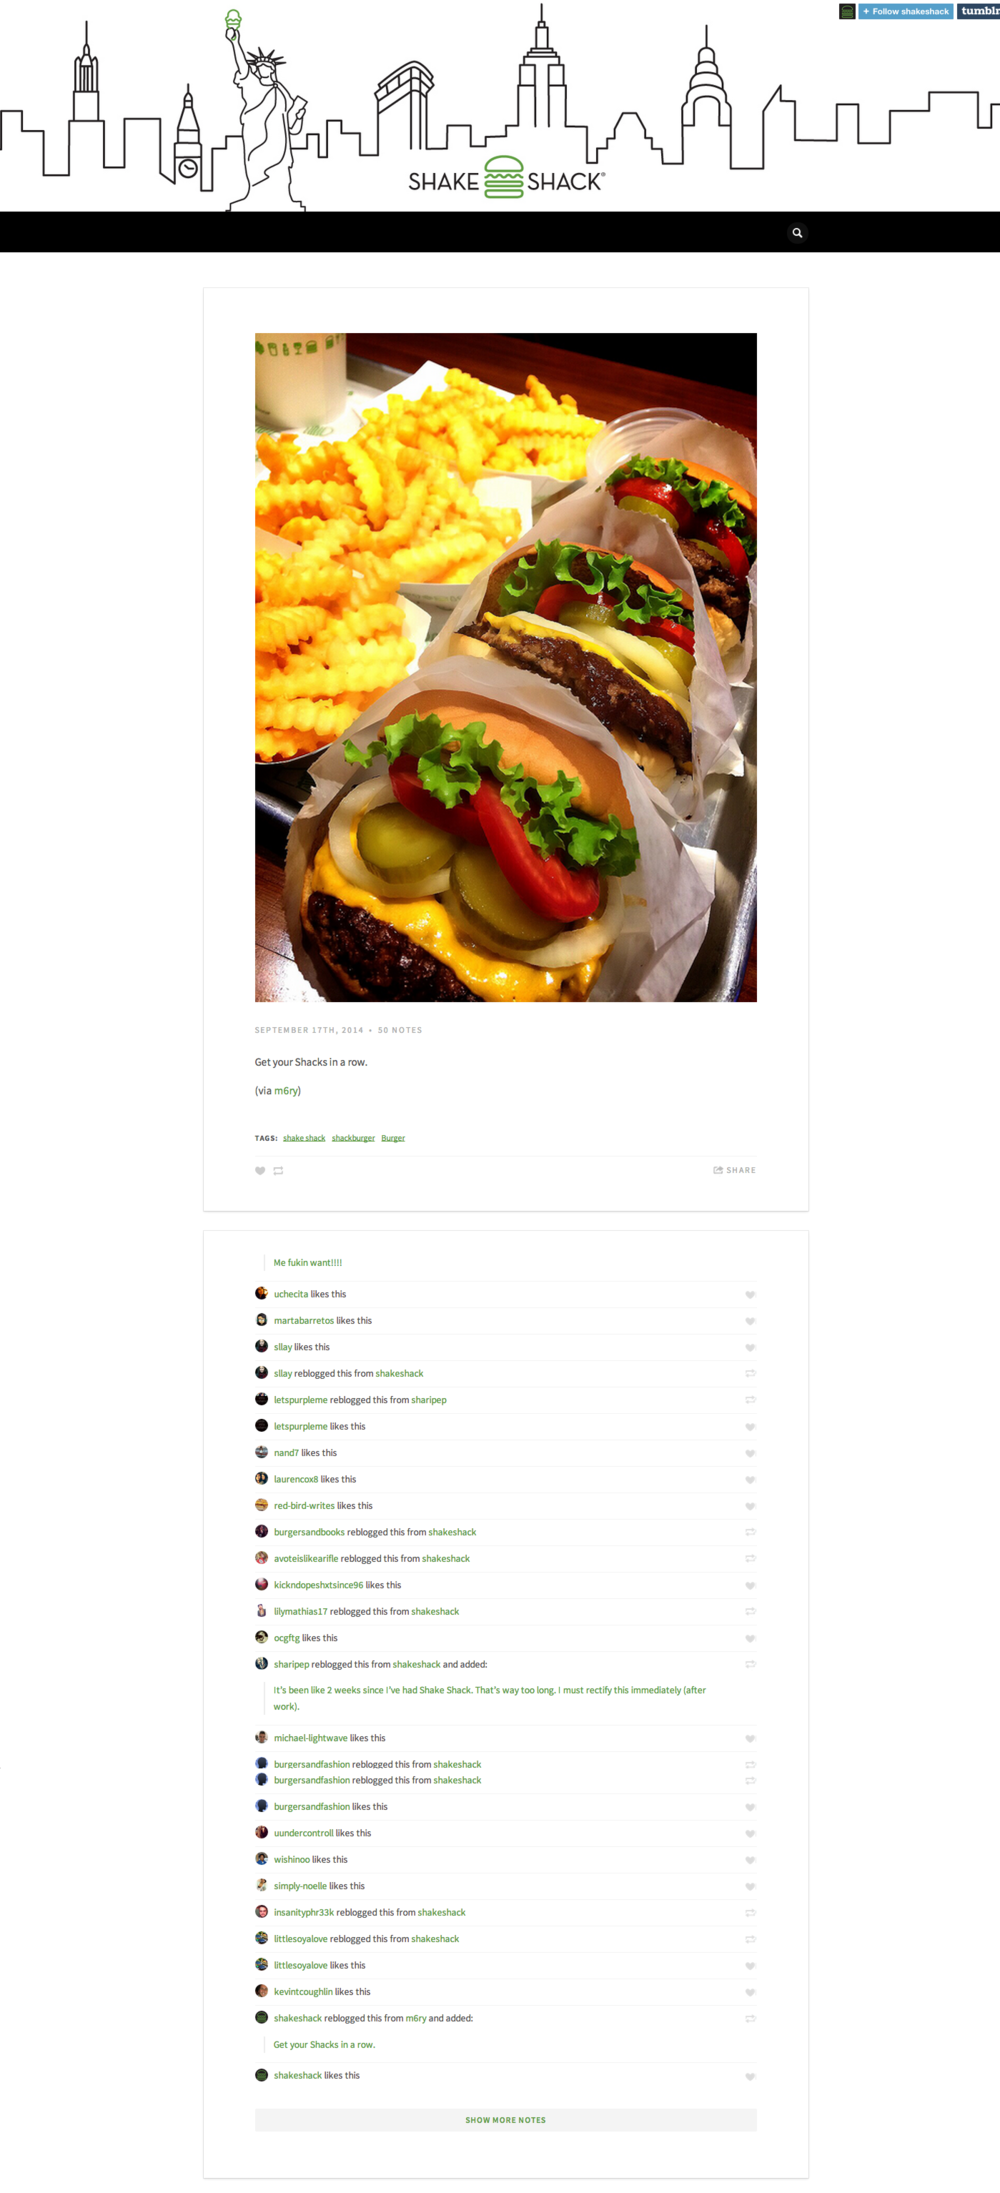 Fun Shake Shack content marketing idea